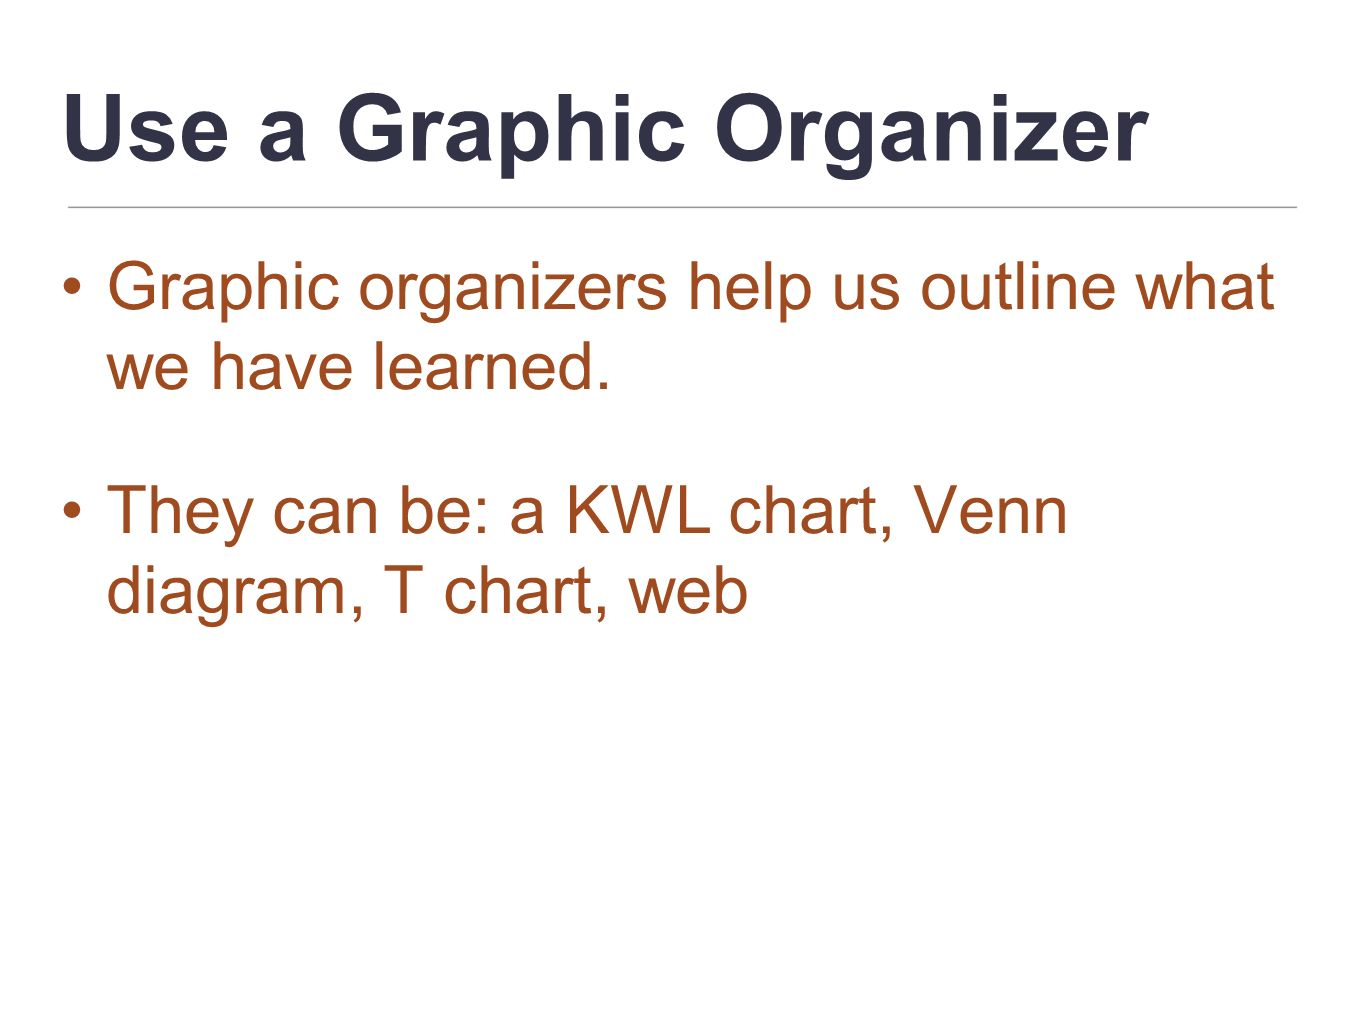 Use a Graphic Organizer